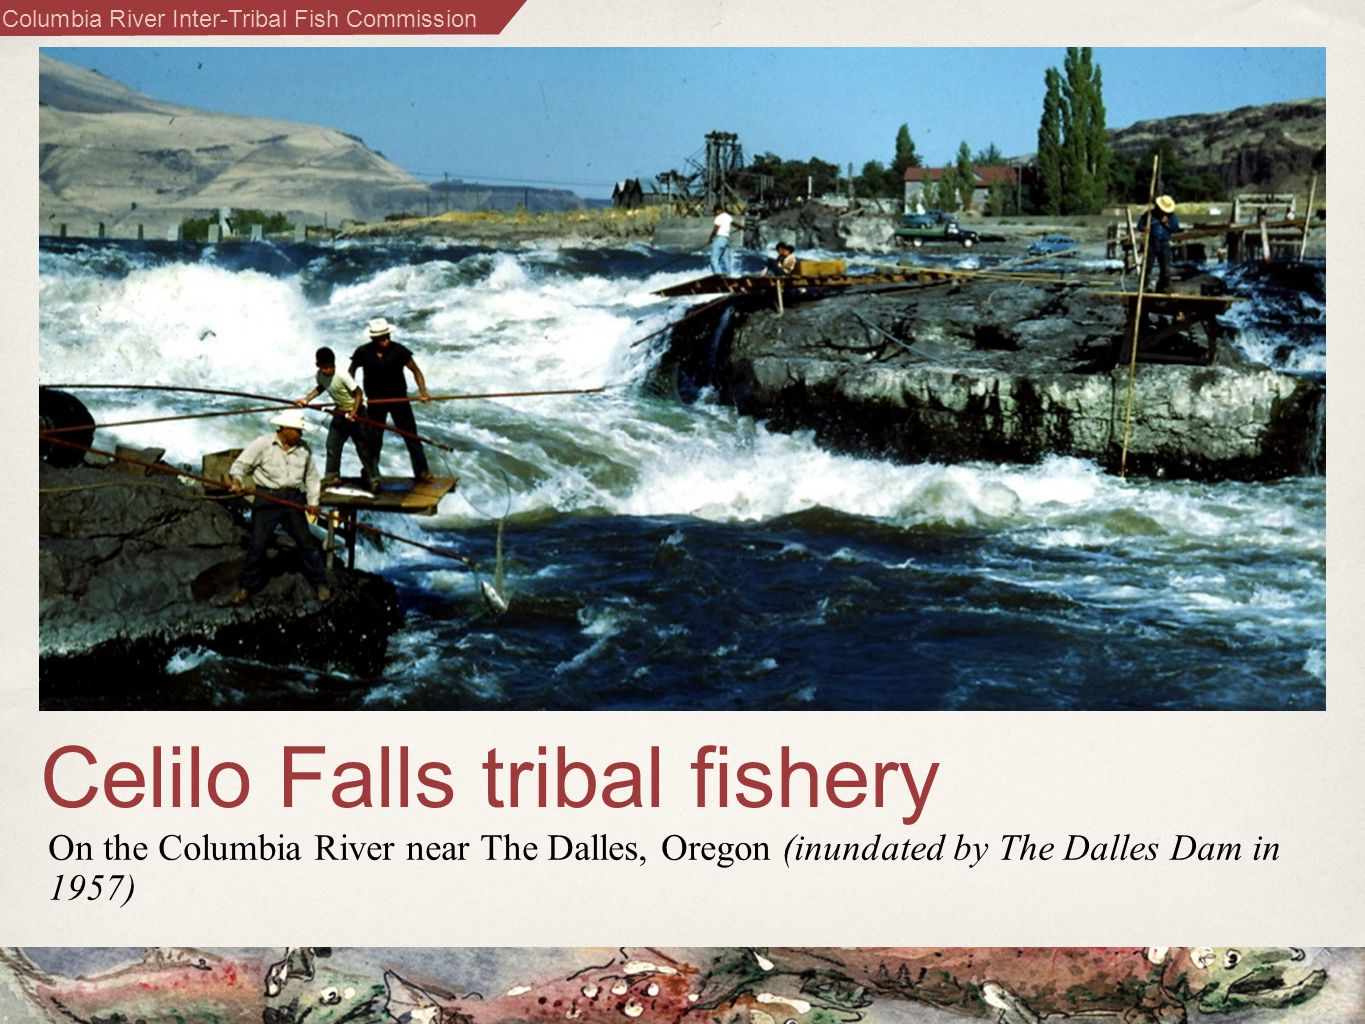 Columbia River Inter-Tribal Fish Commission Celilo Falls tribal fishery On the Columbia River near The Dalles, Oregon (inundated by The Dalles Dam in 1957)